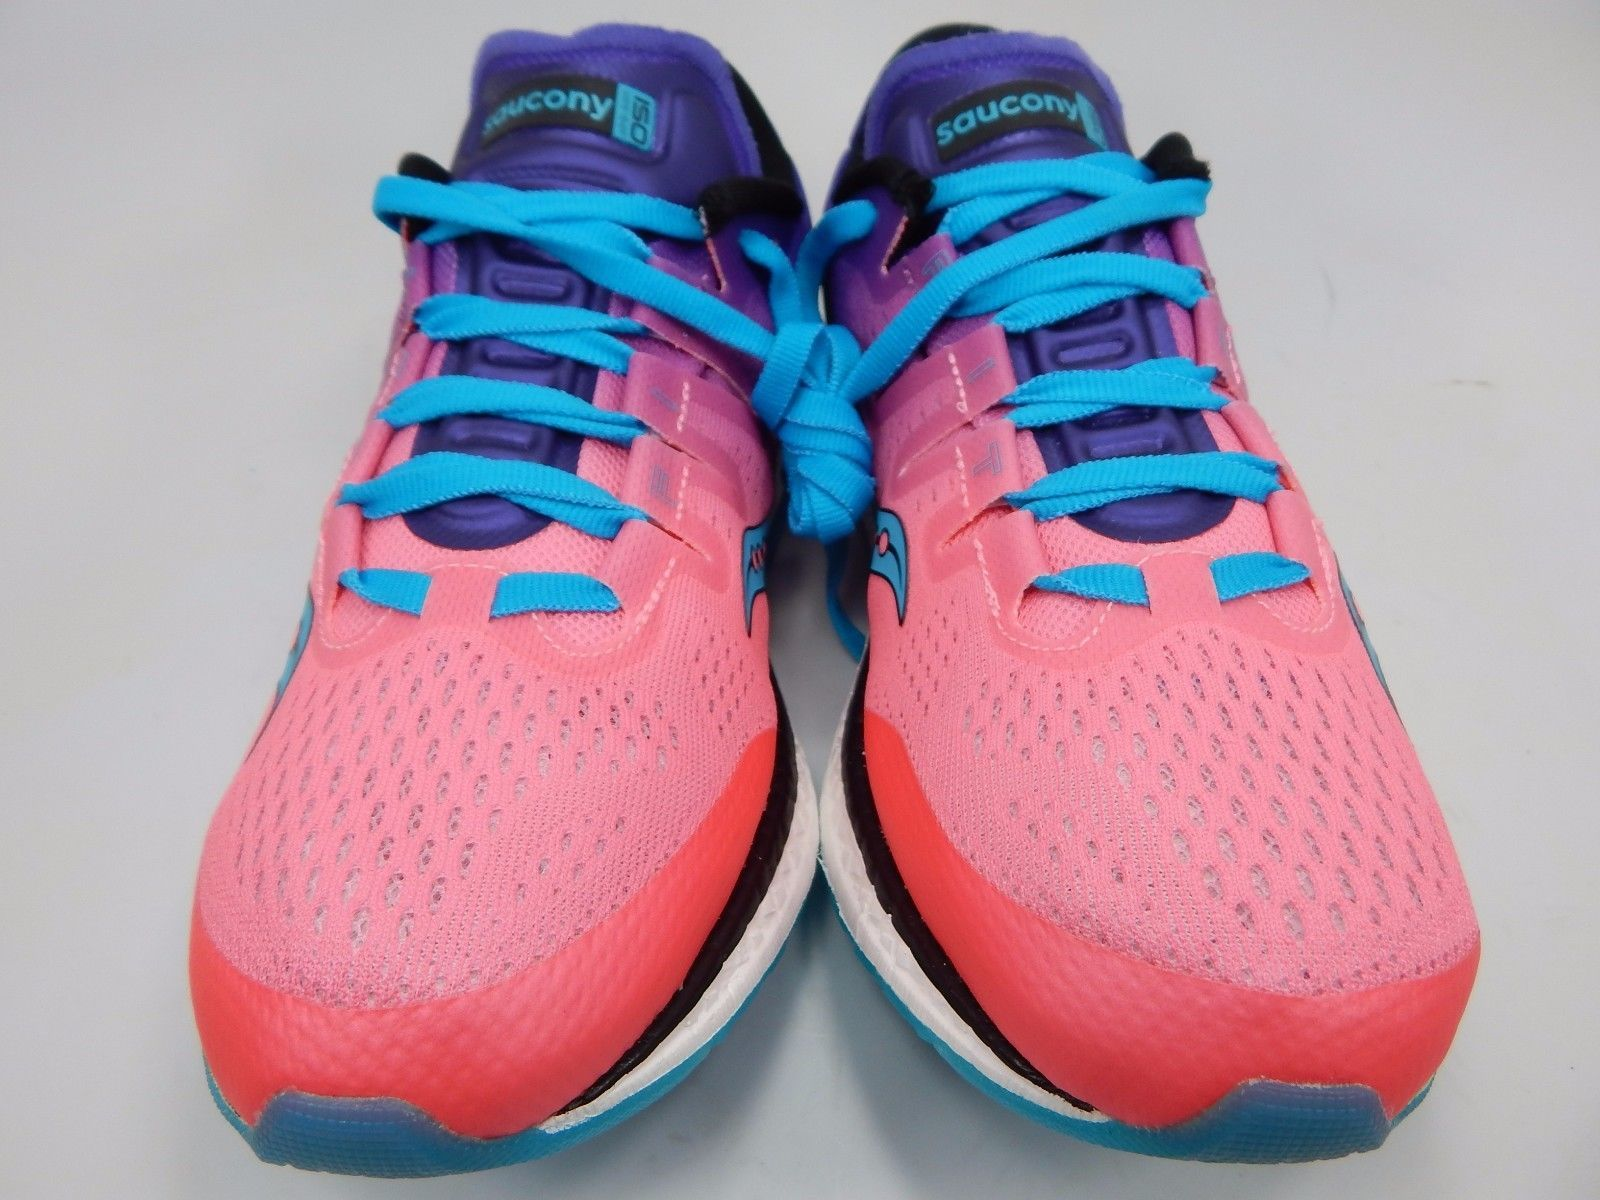 Saucony Freedom ISO Women's Running Shoes Size US 8 M (B) EU 39 Pink S10355-8